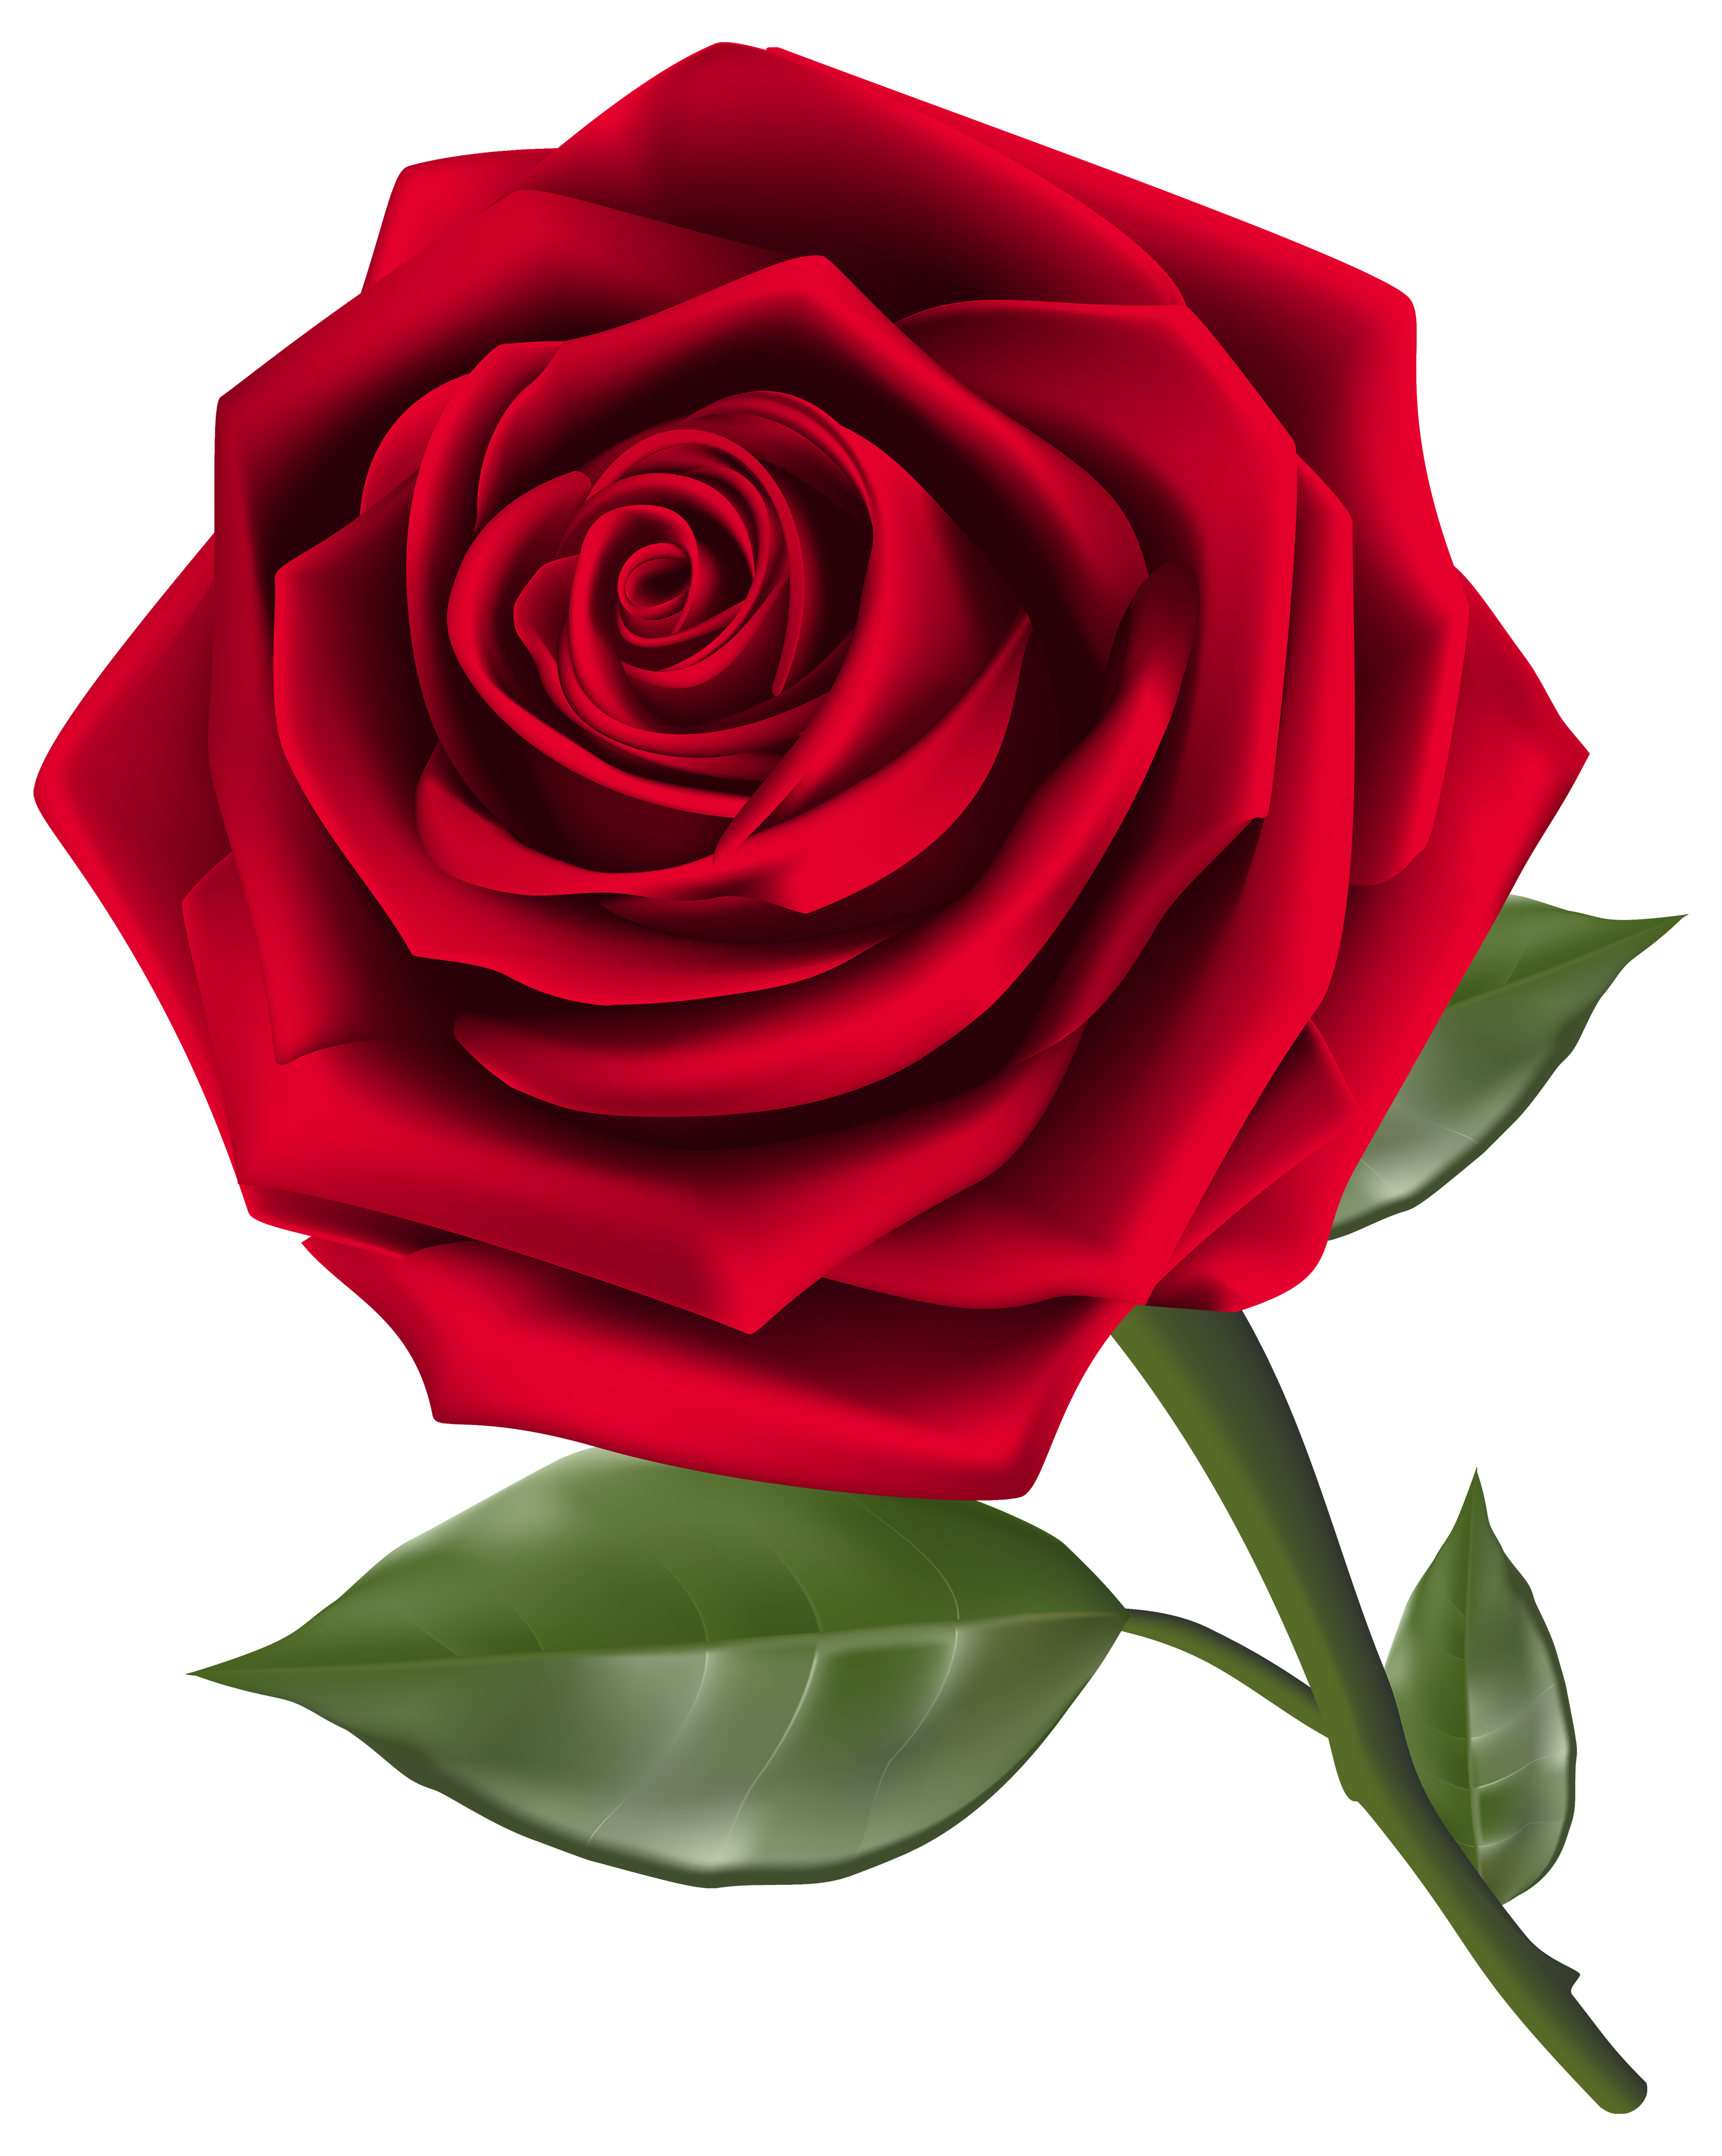 Red Rose Clip Art - Synkee